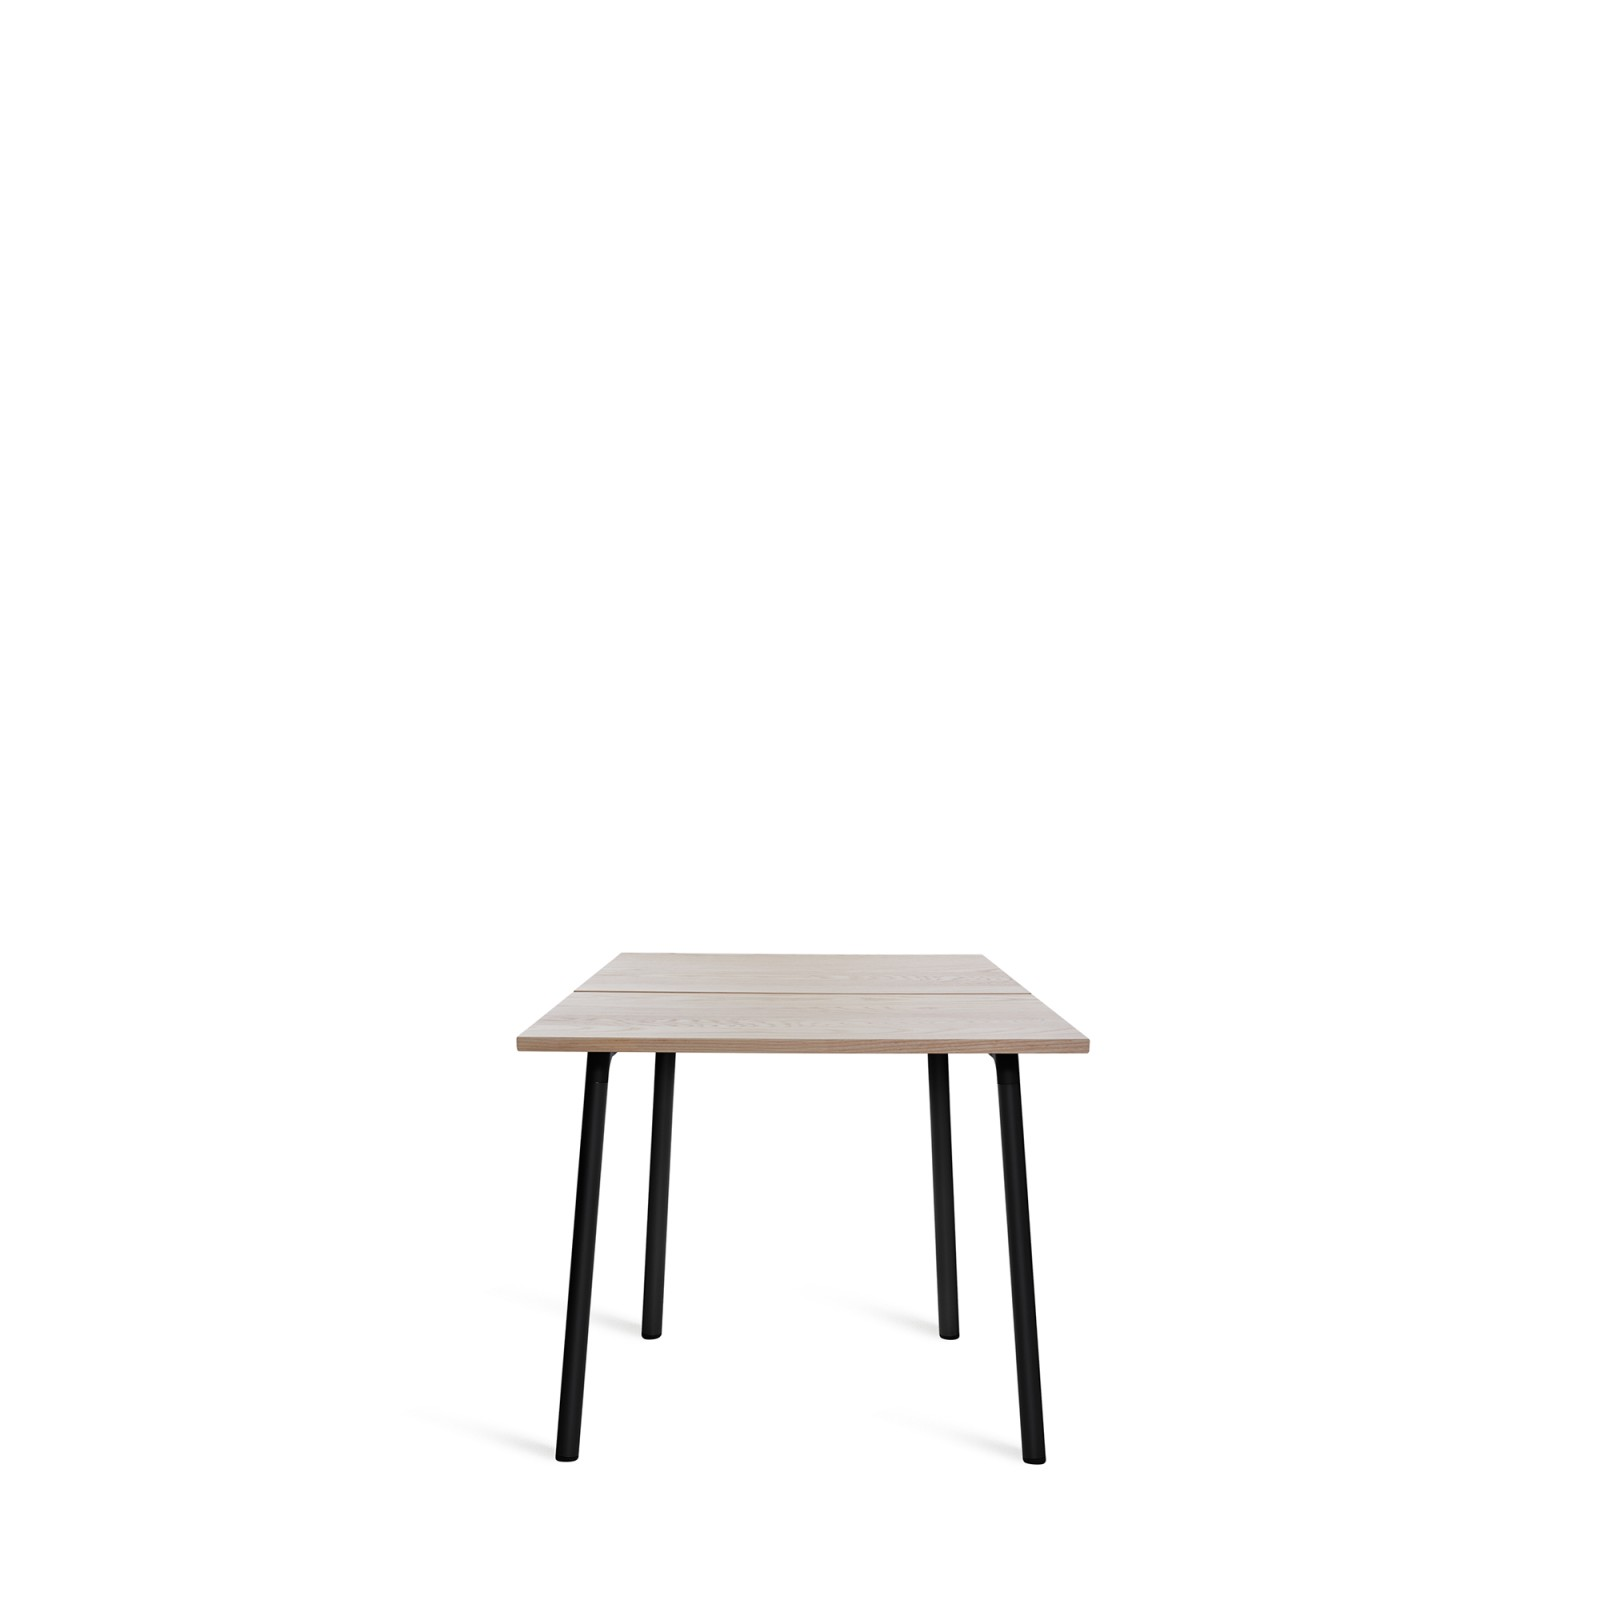 Run Dining Table 83cm, Black, Ash Top